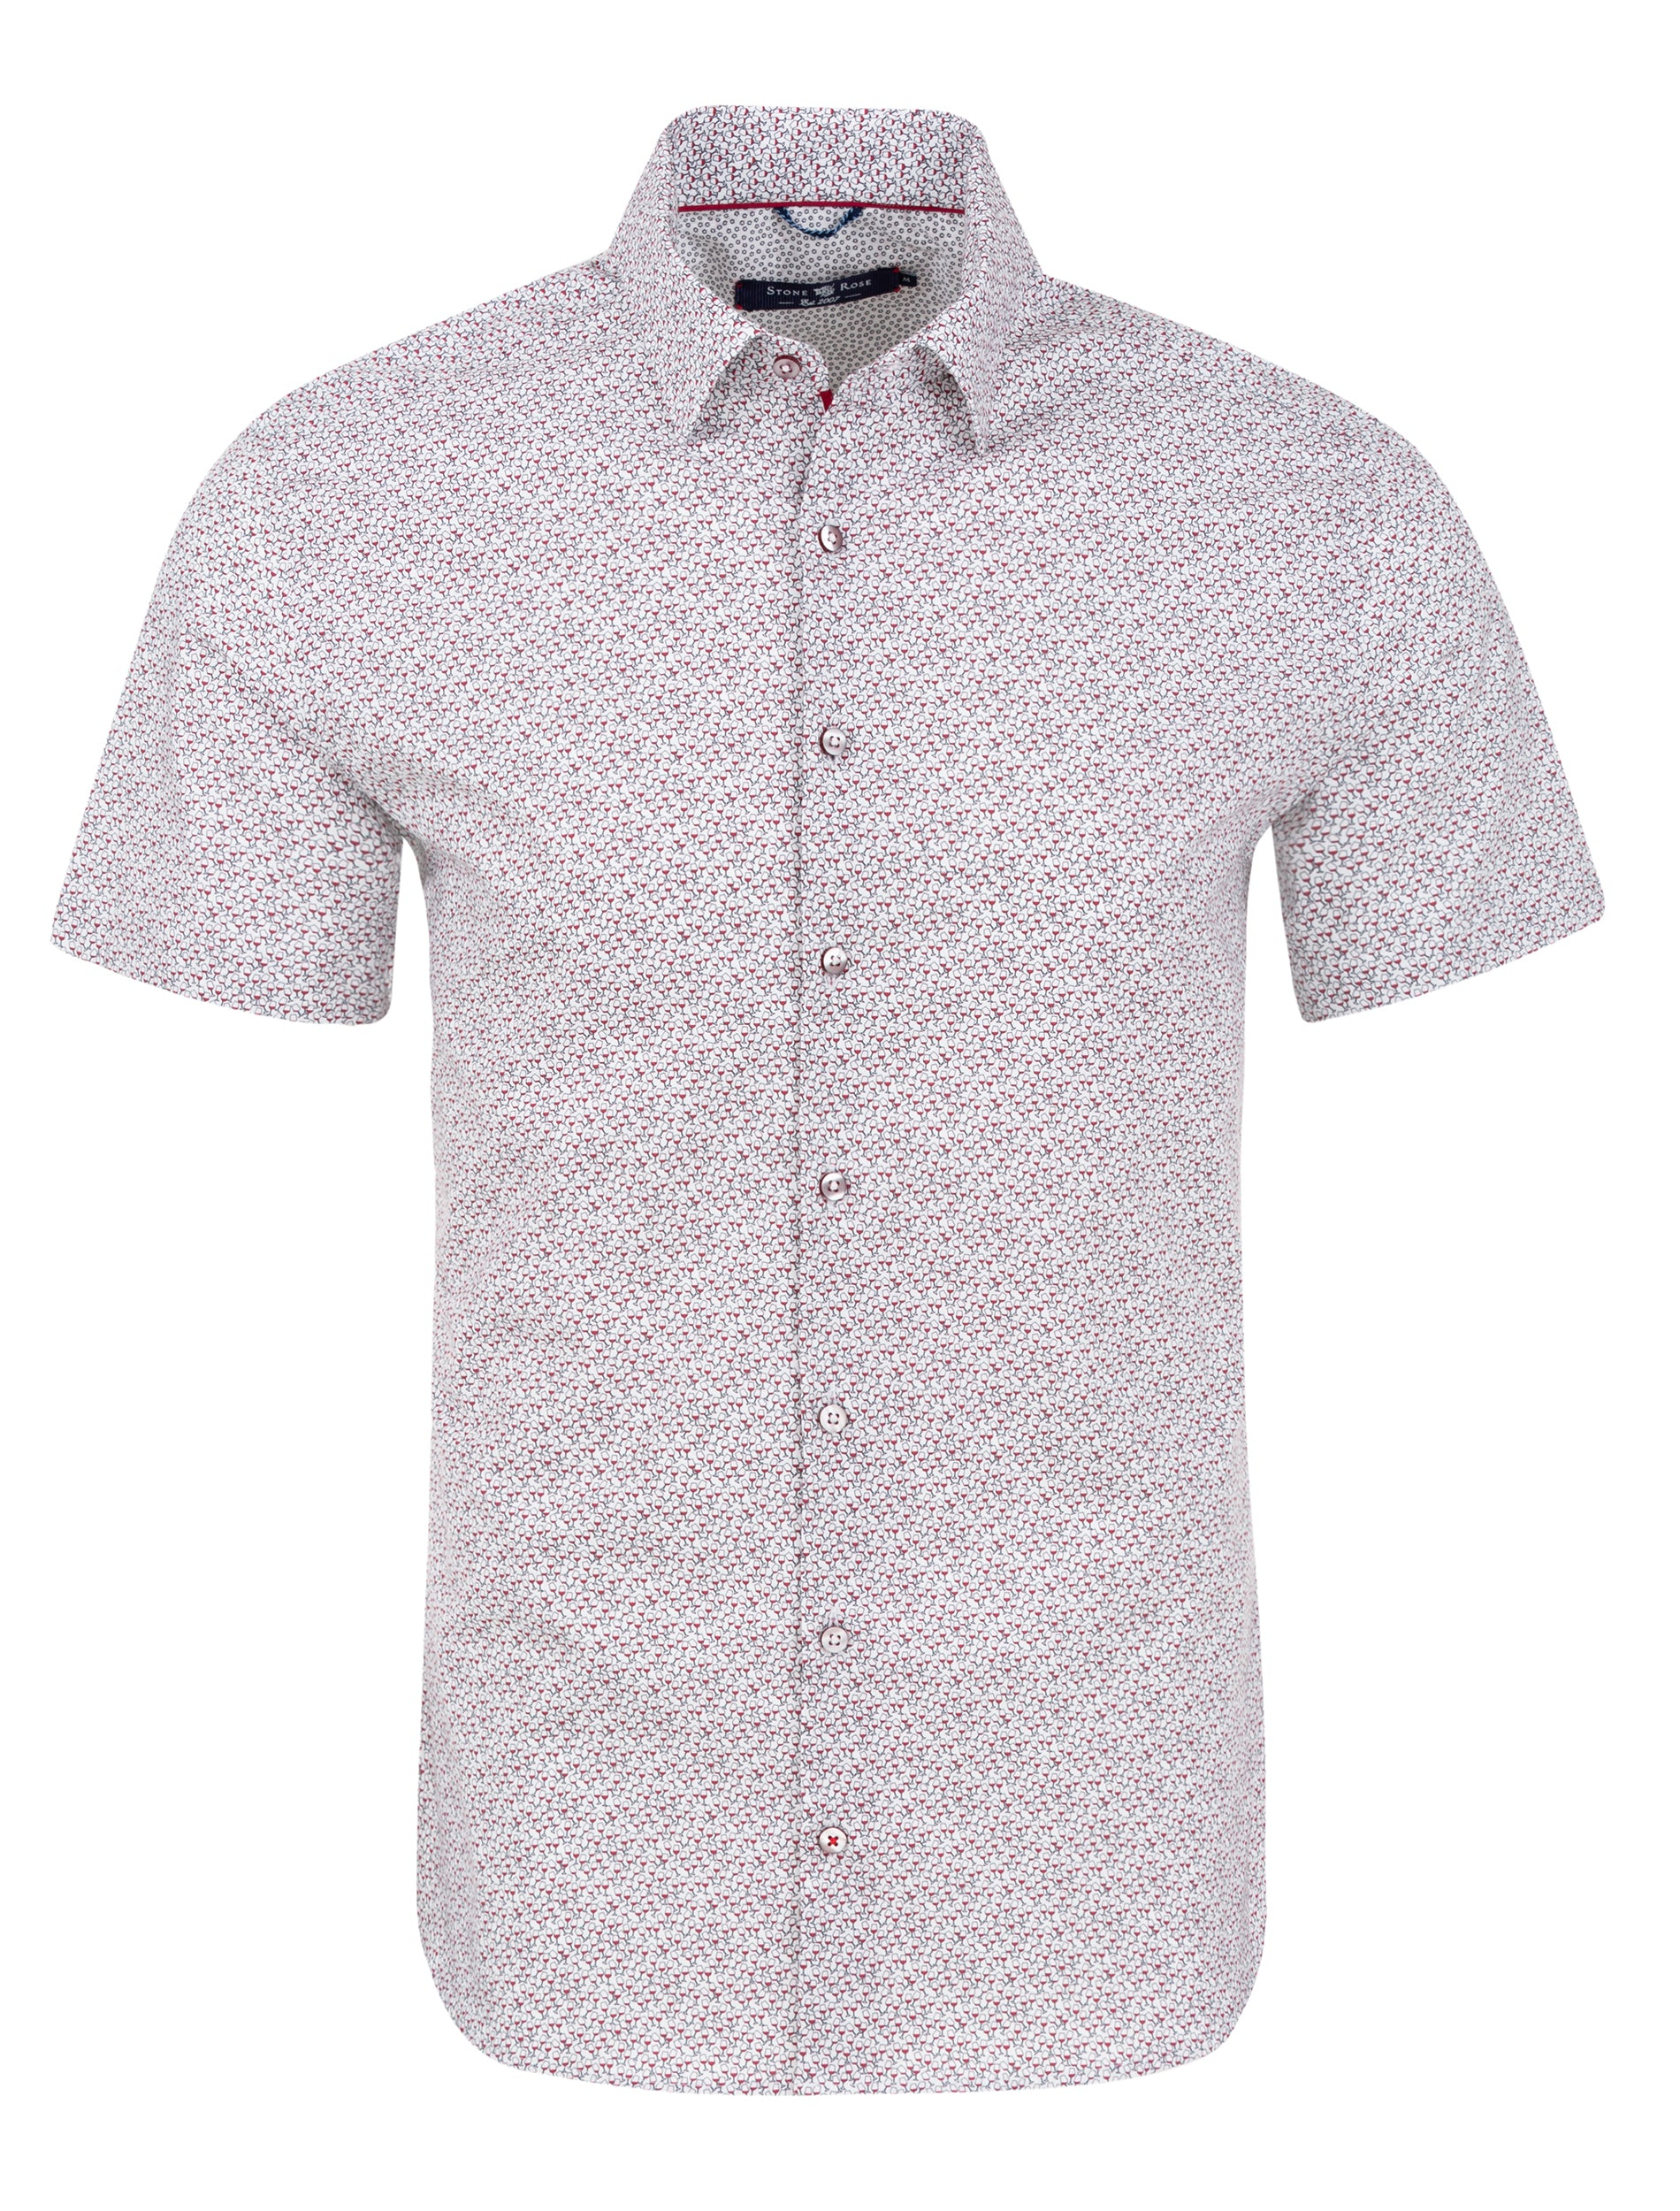 White Wine Glasses Print Short Sleeve Shirt-Stone Rose